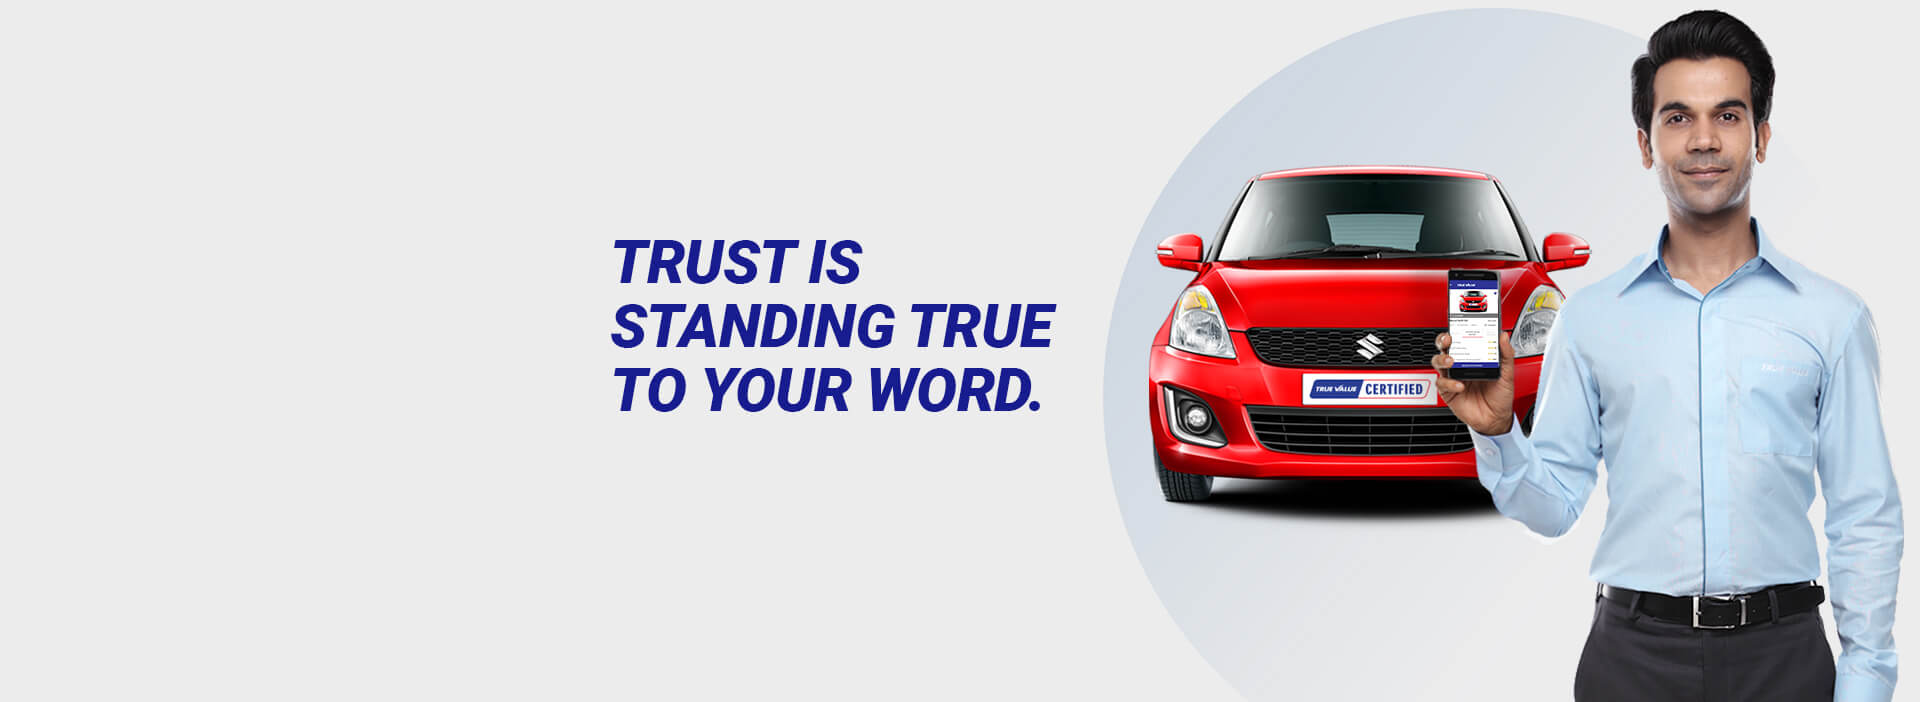 Maruti Suzuki True Value Cars In Chennai